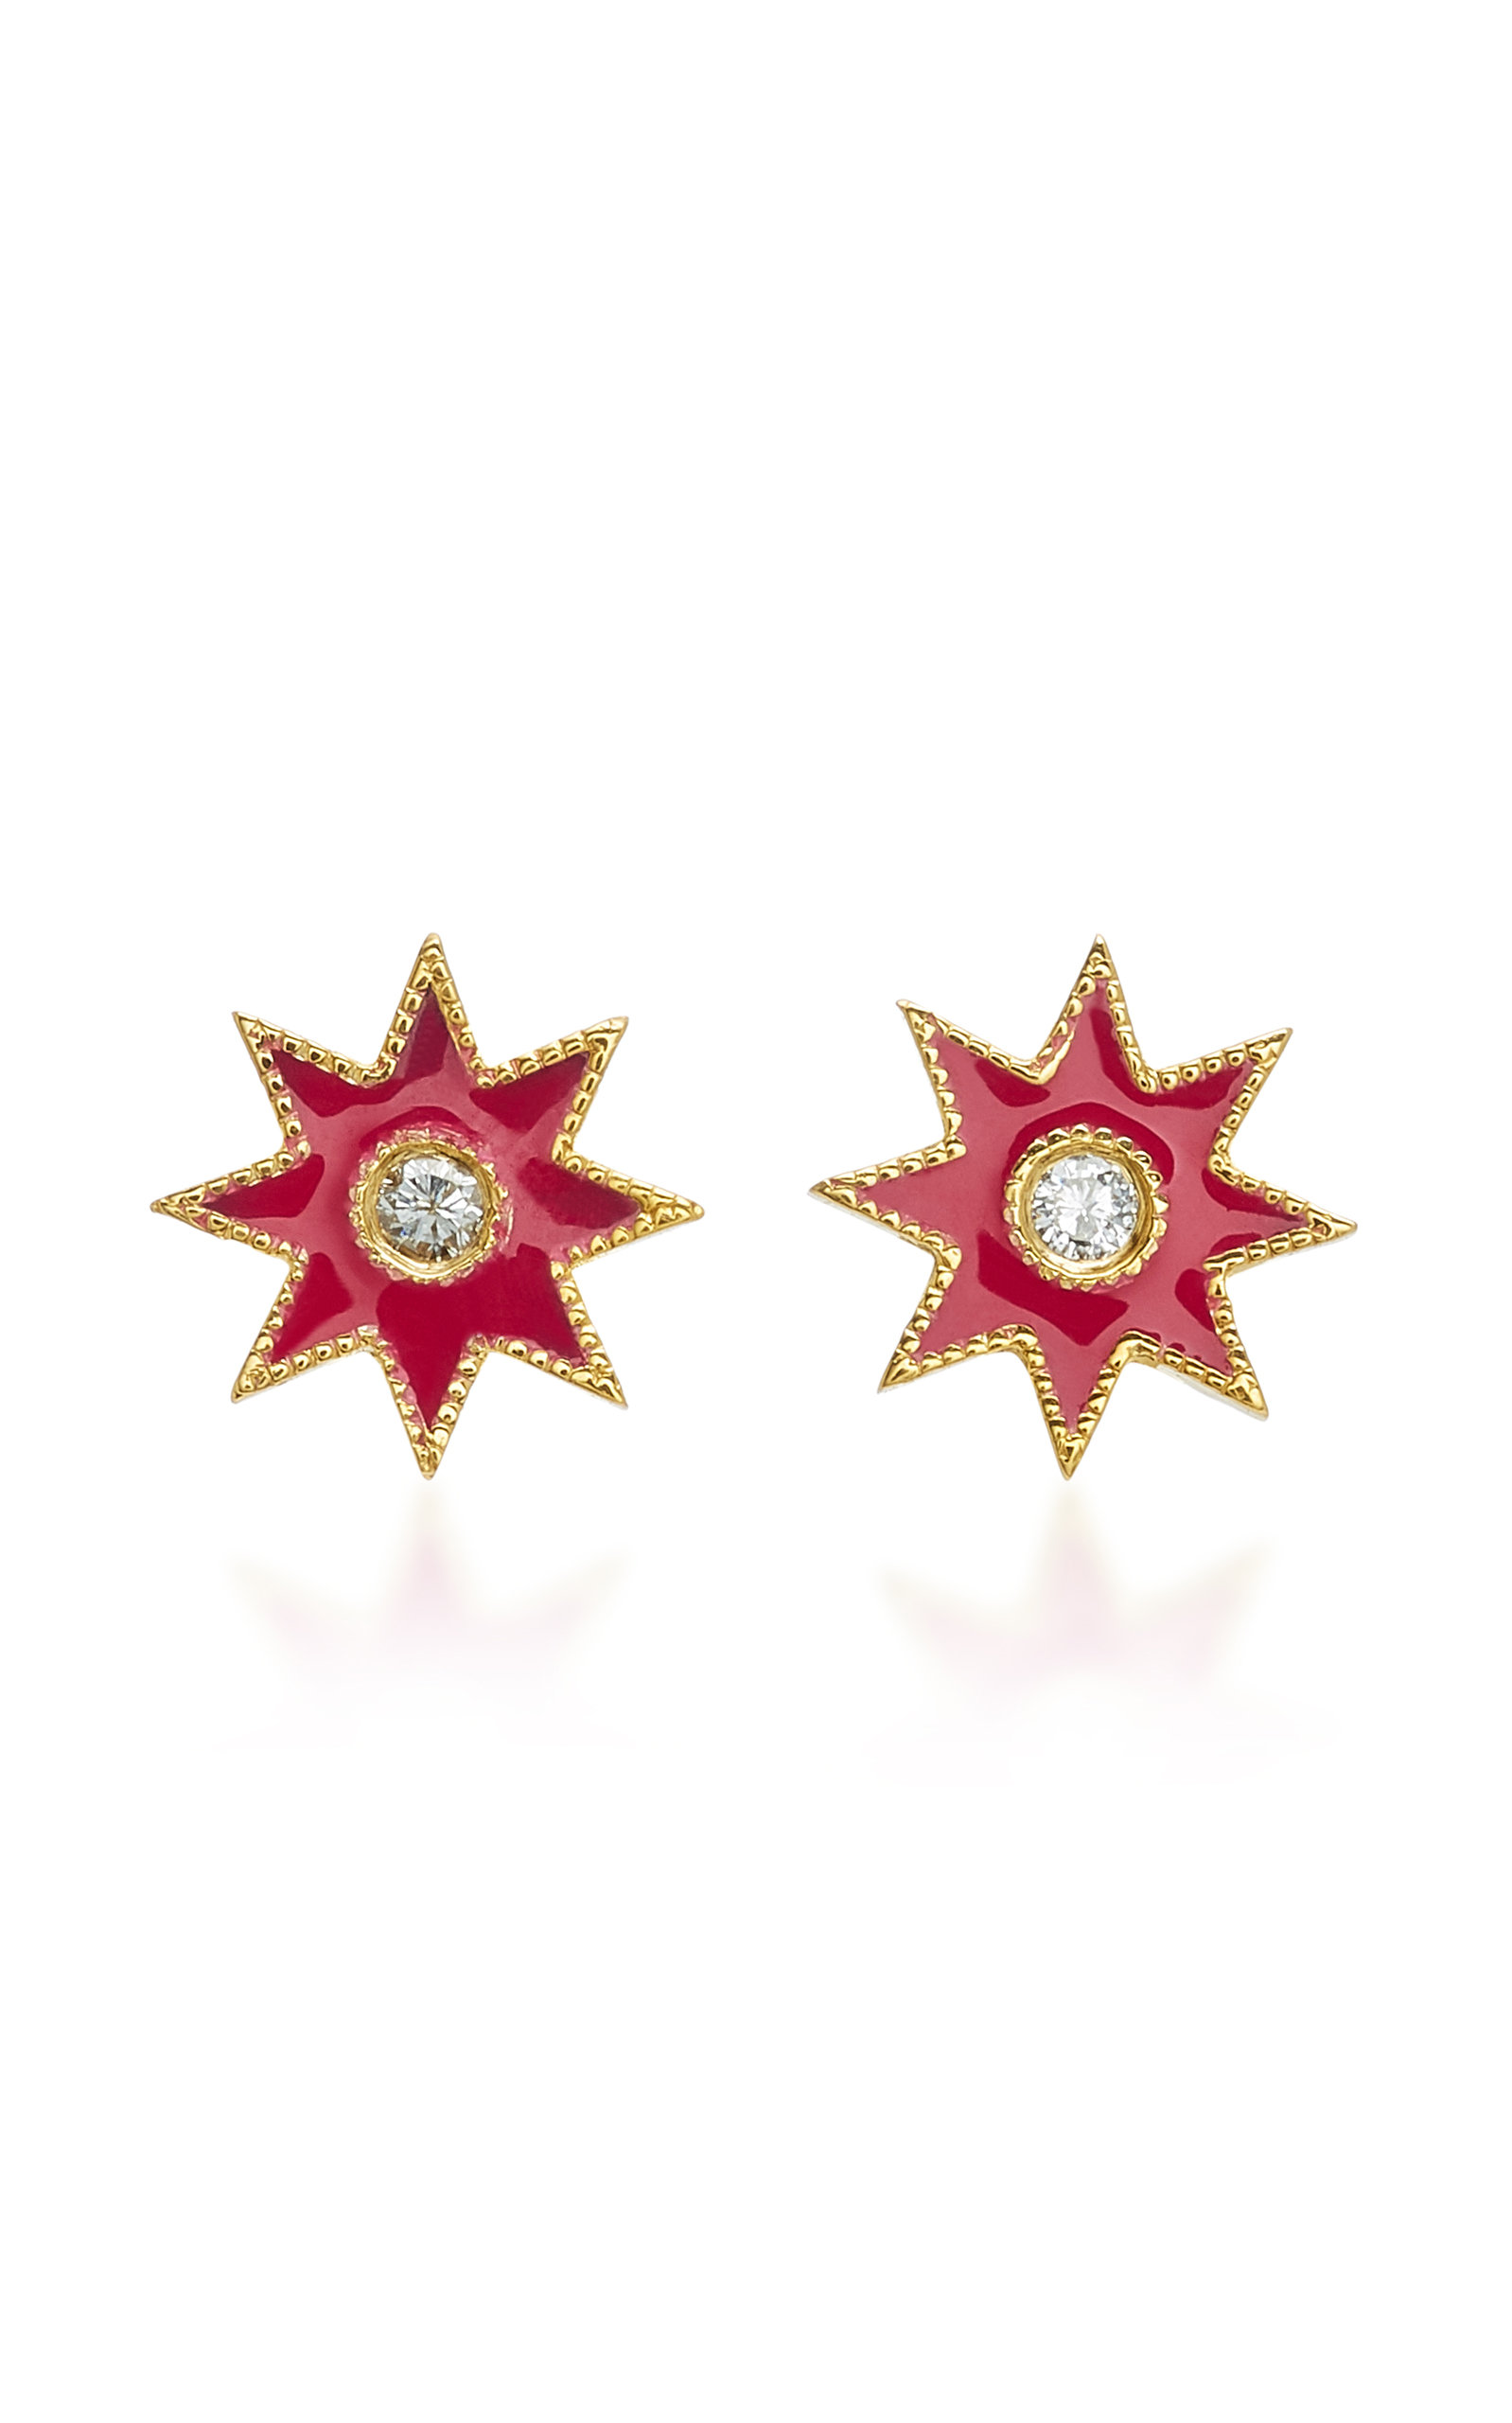 COLETTE JEWELRY STAR 18K WHITE GOLD ENAMEL AND DIAMOND EARRINGS